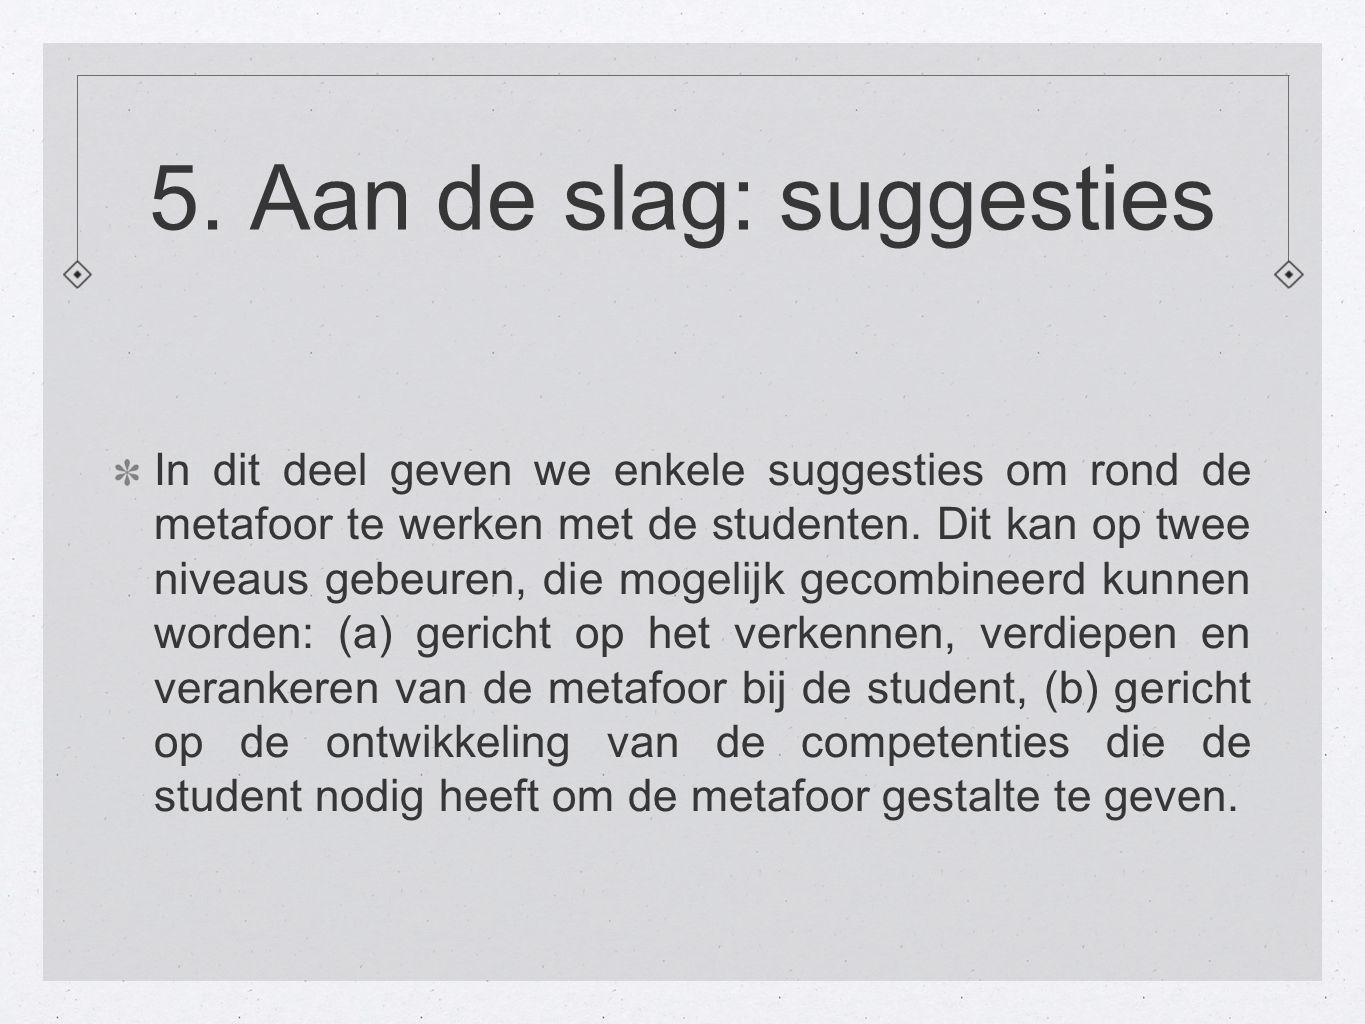 5. Aan de slag: suggesties